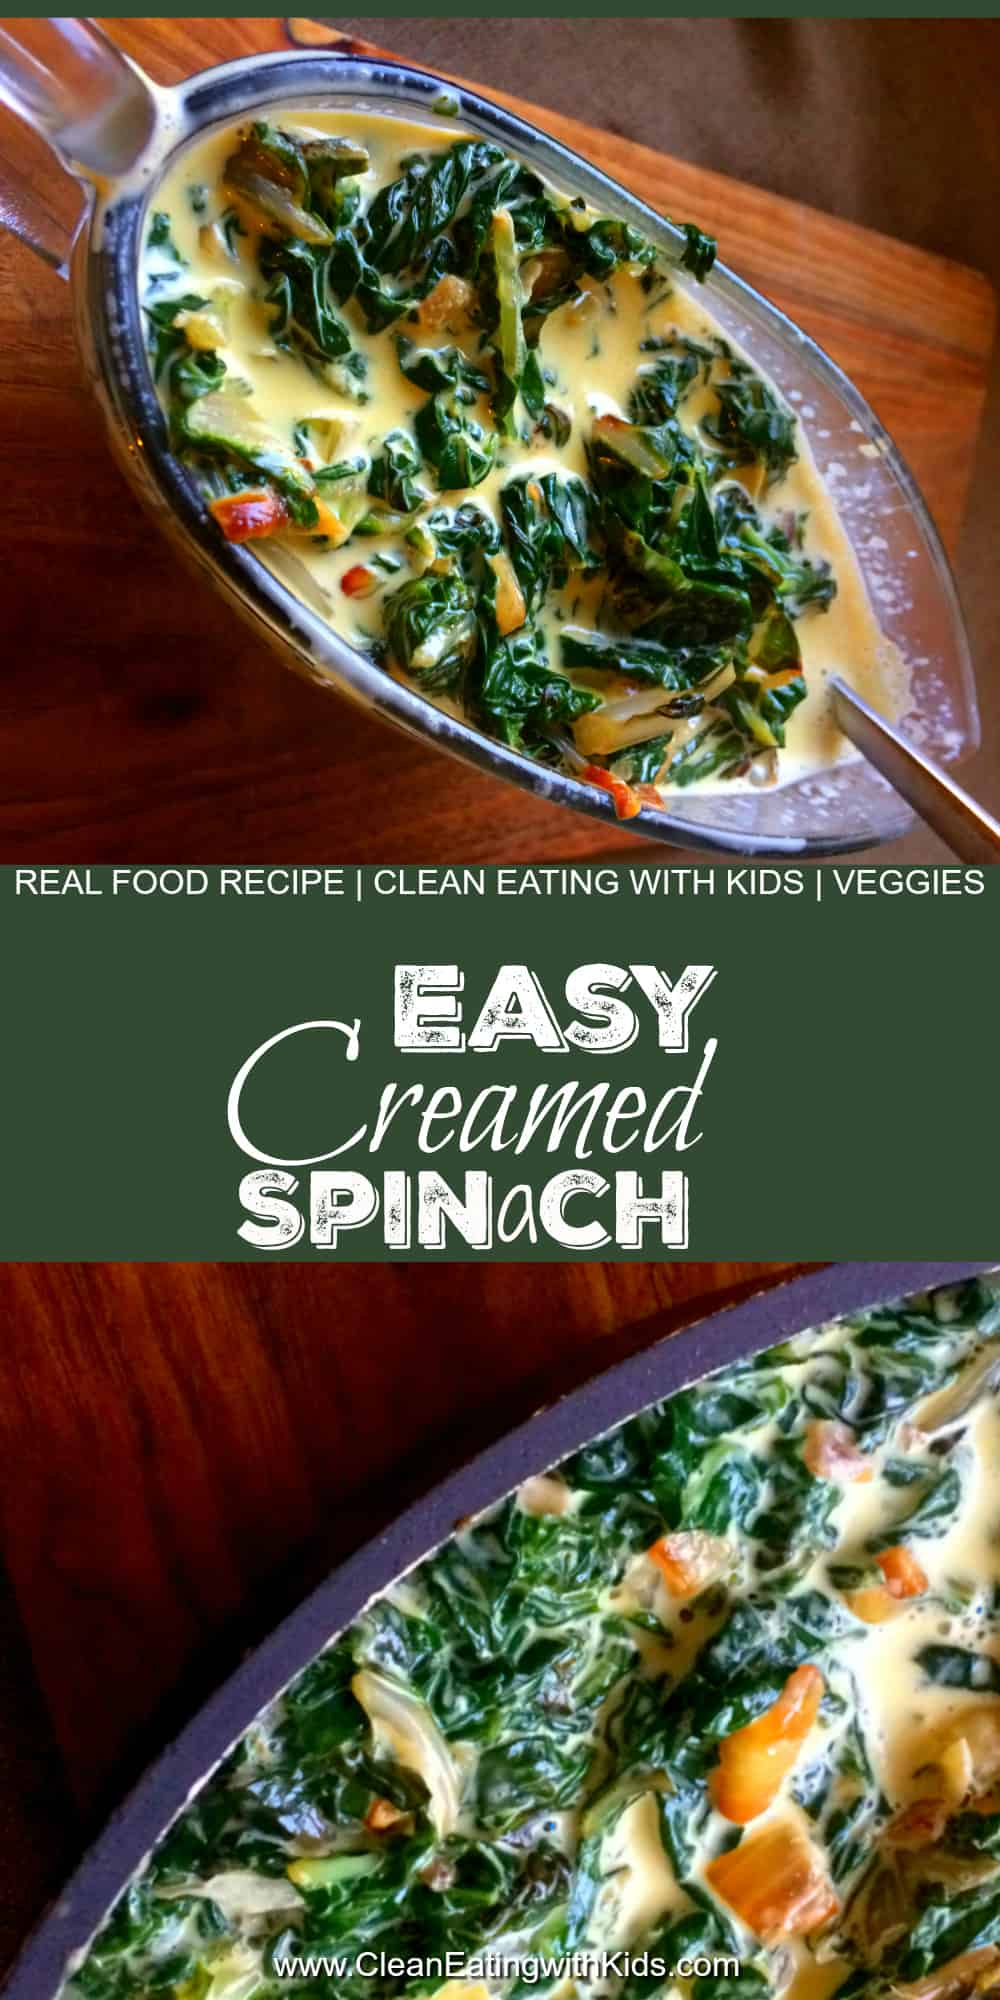 Cannot believe that my kids loved this!! Best Creamed Spinach recipe ever.